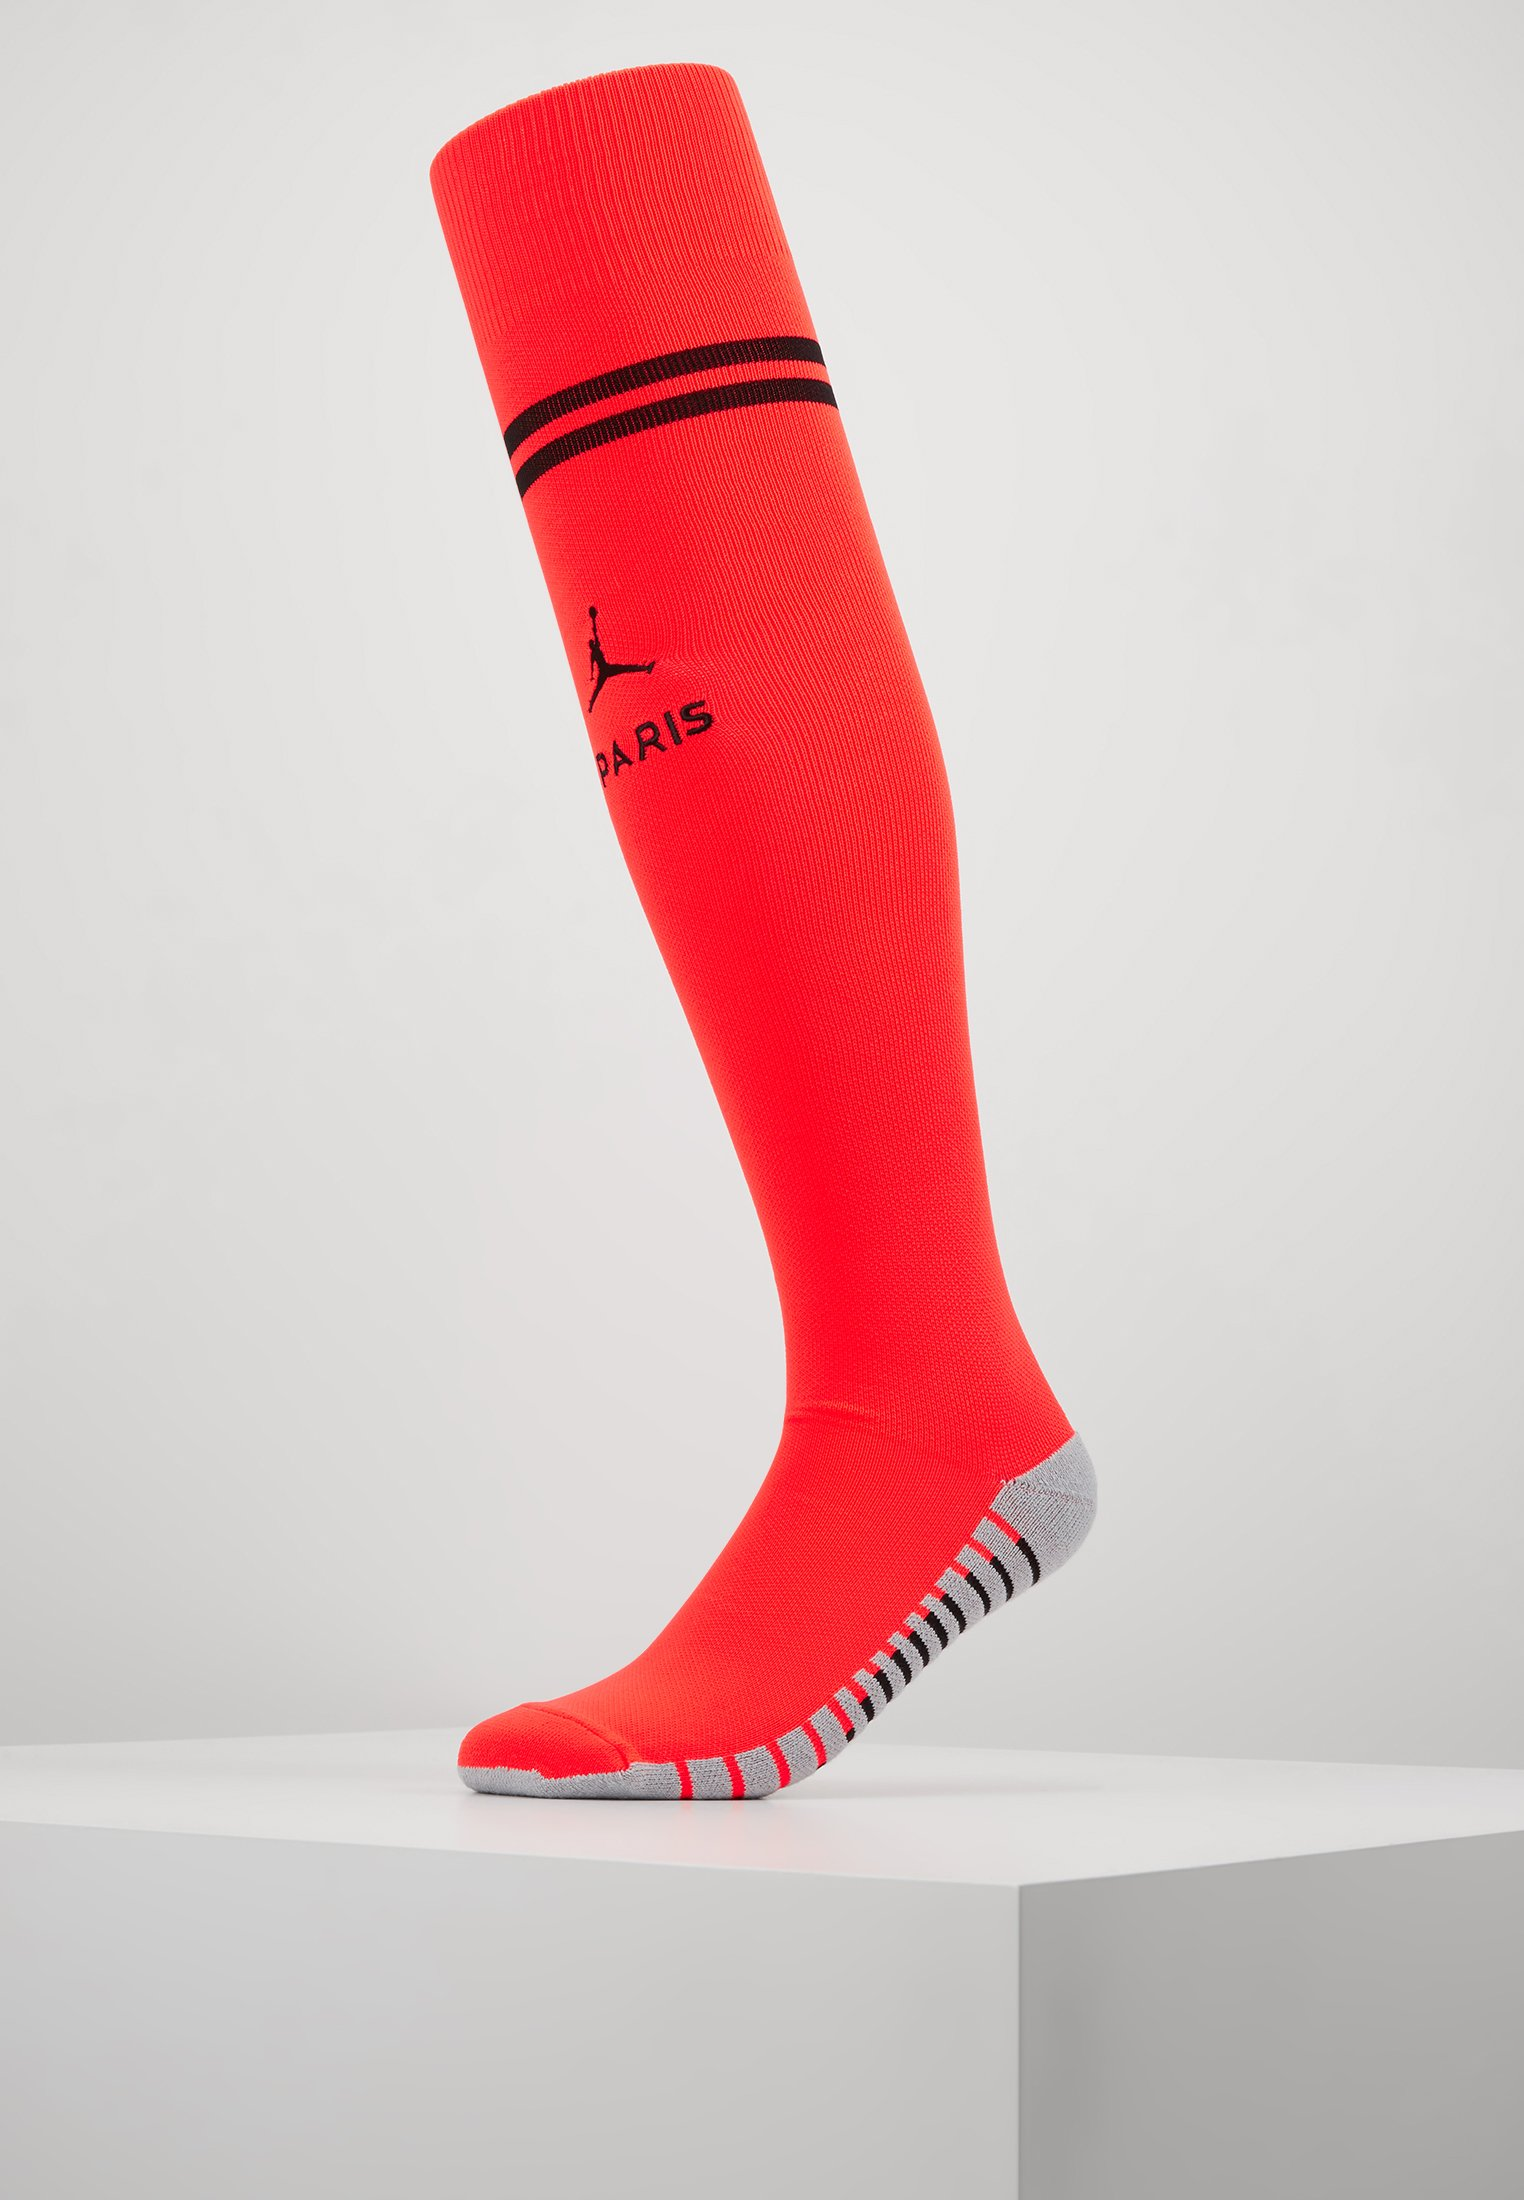 SockChaussettes black Paris Sport Nike St Infrared Stad De Germain Performance cl1JKF